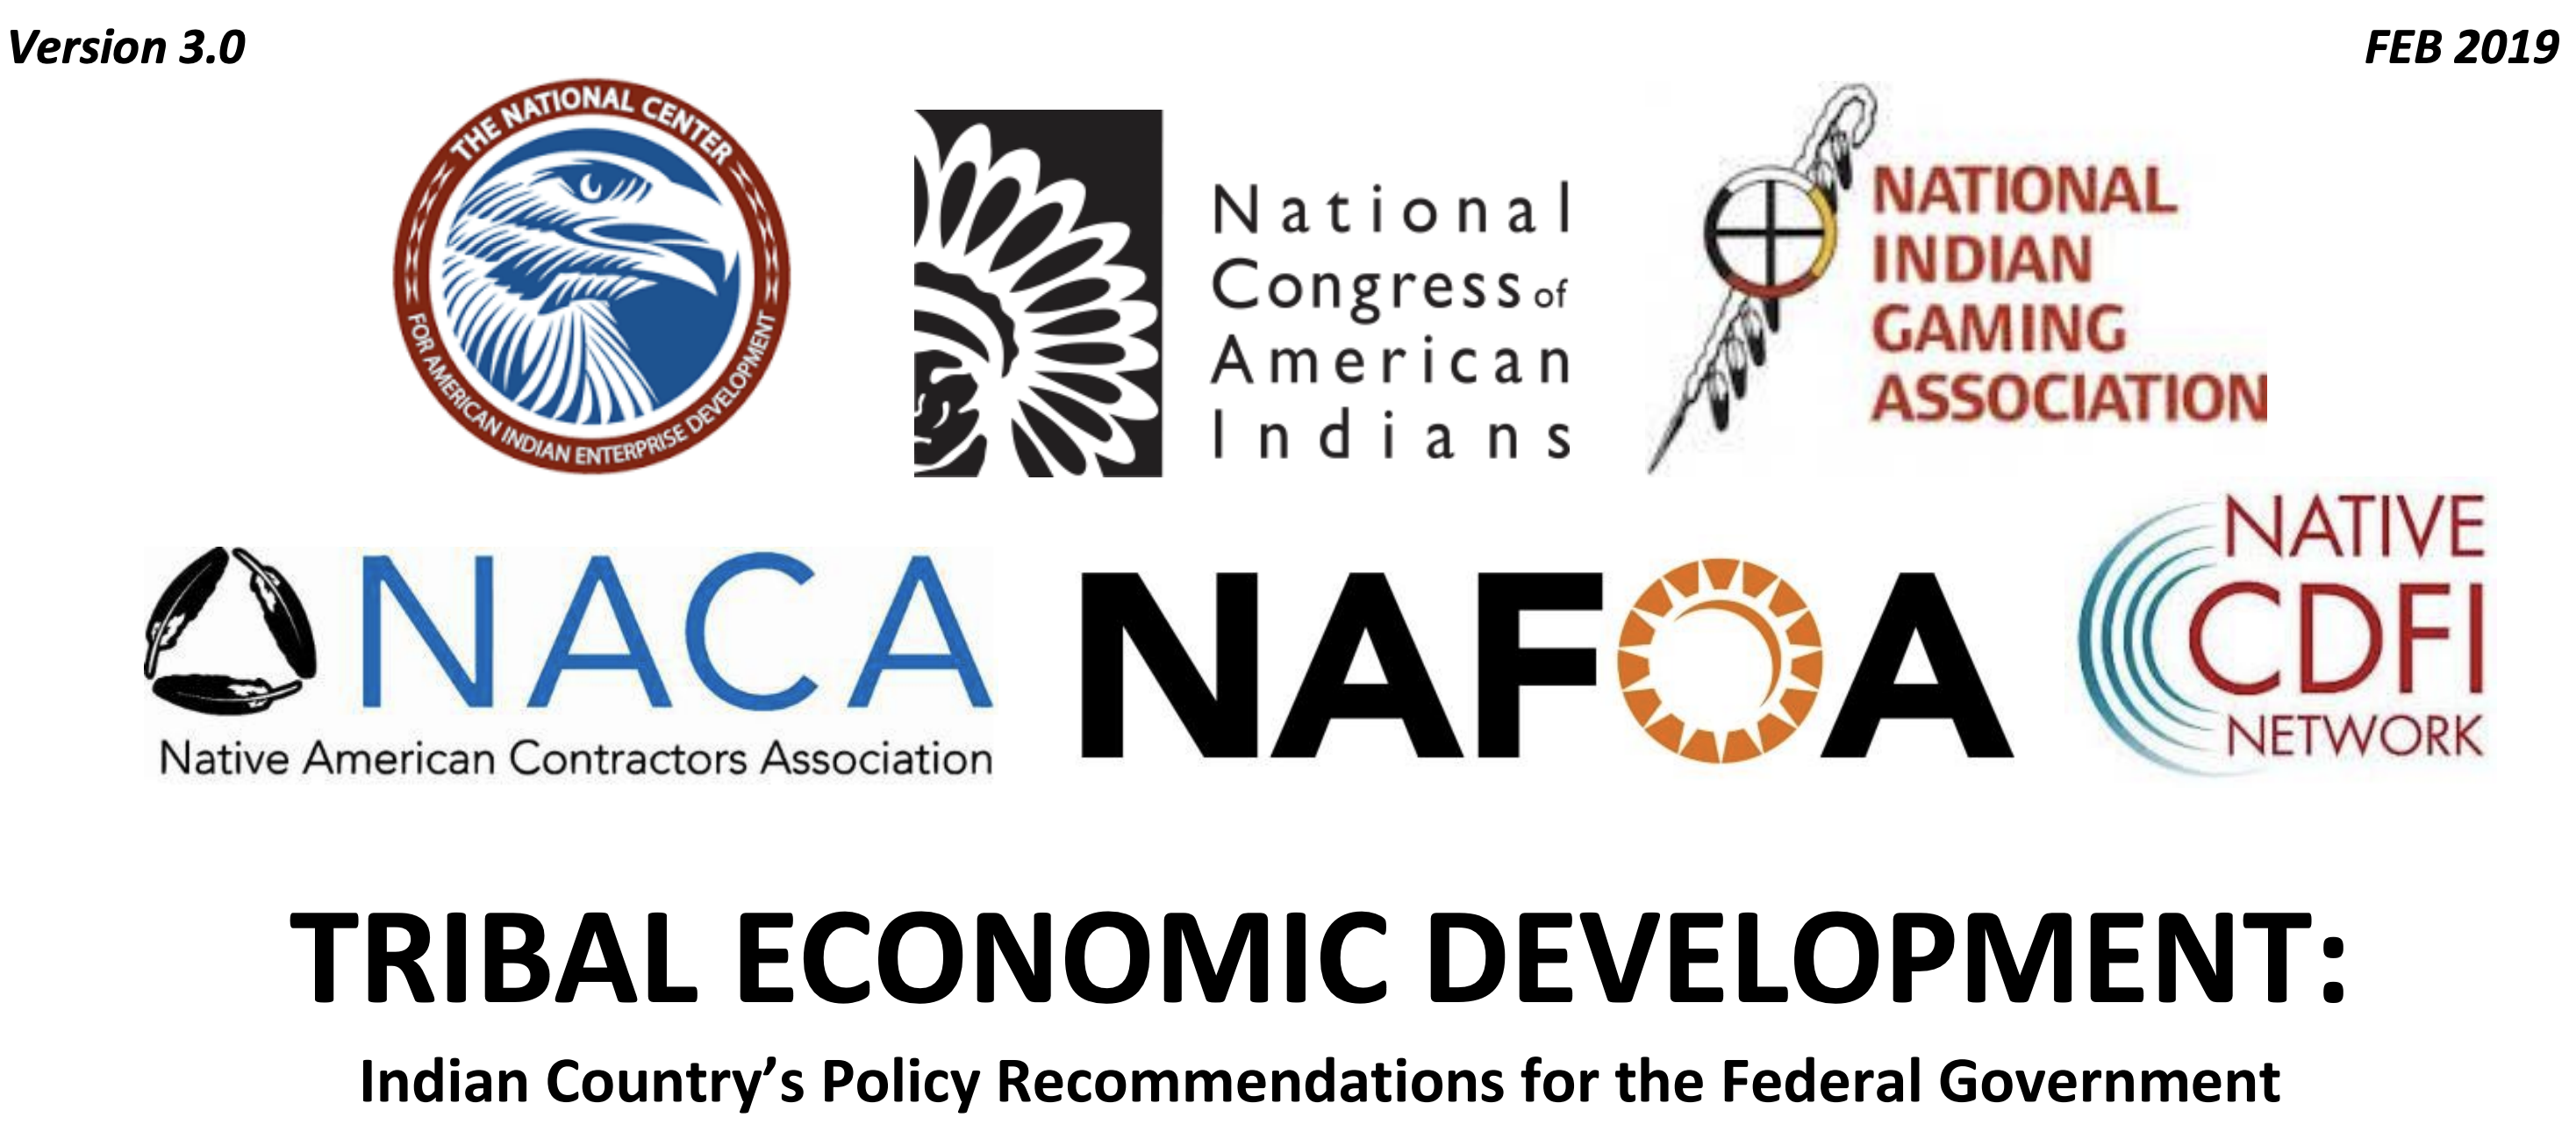 TRIBAL ECONOMIC DEVELOPMENT: Indian Country's Policy Recommendations for the Federal Government